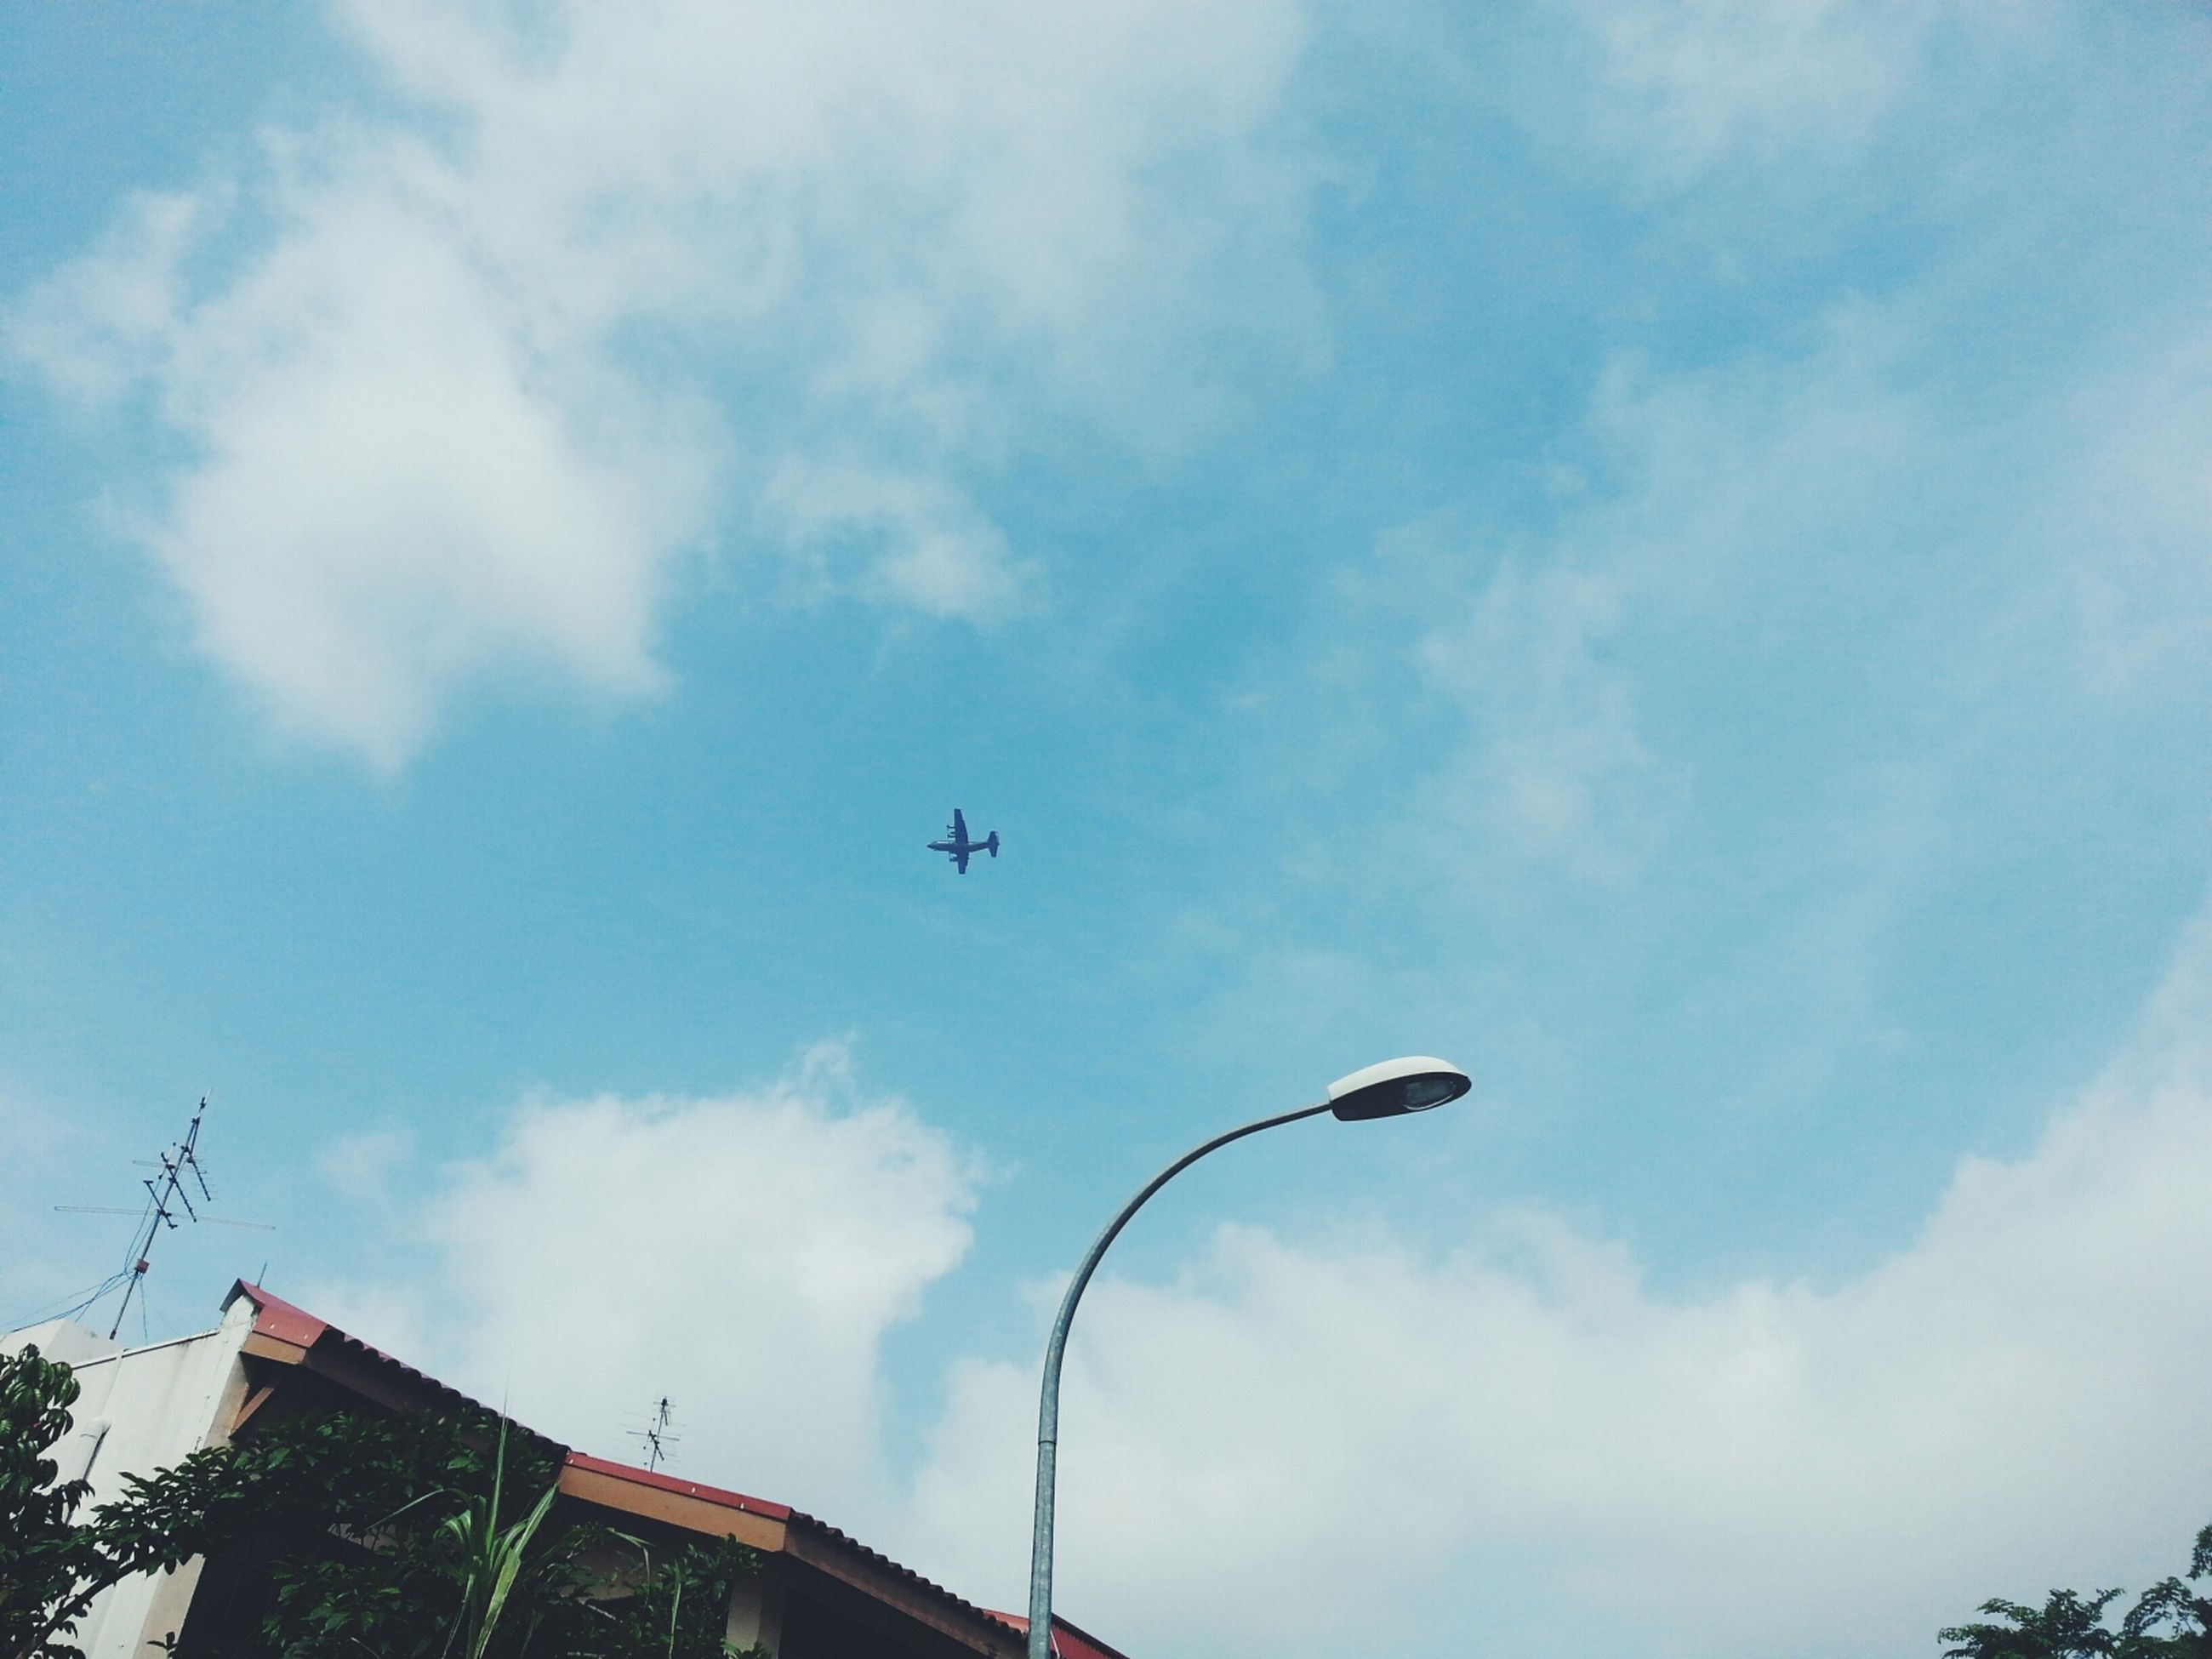 low angle view, sky, built structure, architecture, building exterior, cloud - sky, transportation, street light, cloud, mode of transport, cloudy, day, outdoors, flying, air vehicle, lighting equipment, high section, airplane, no people, blue